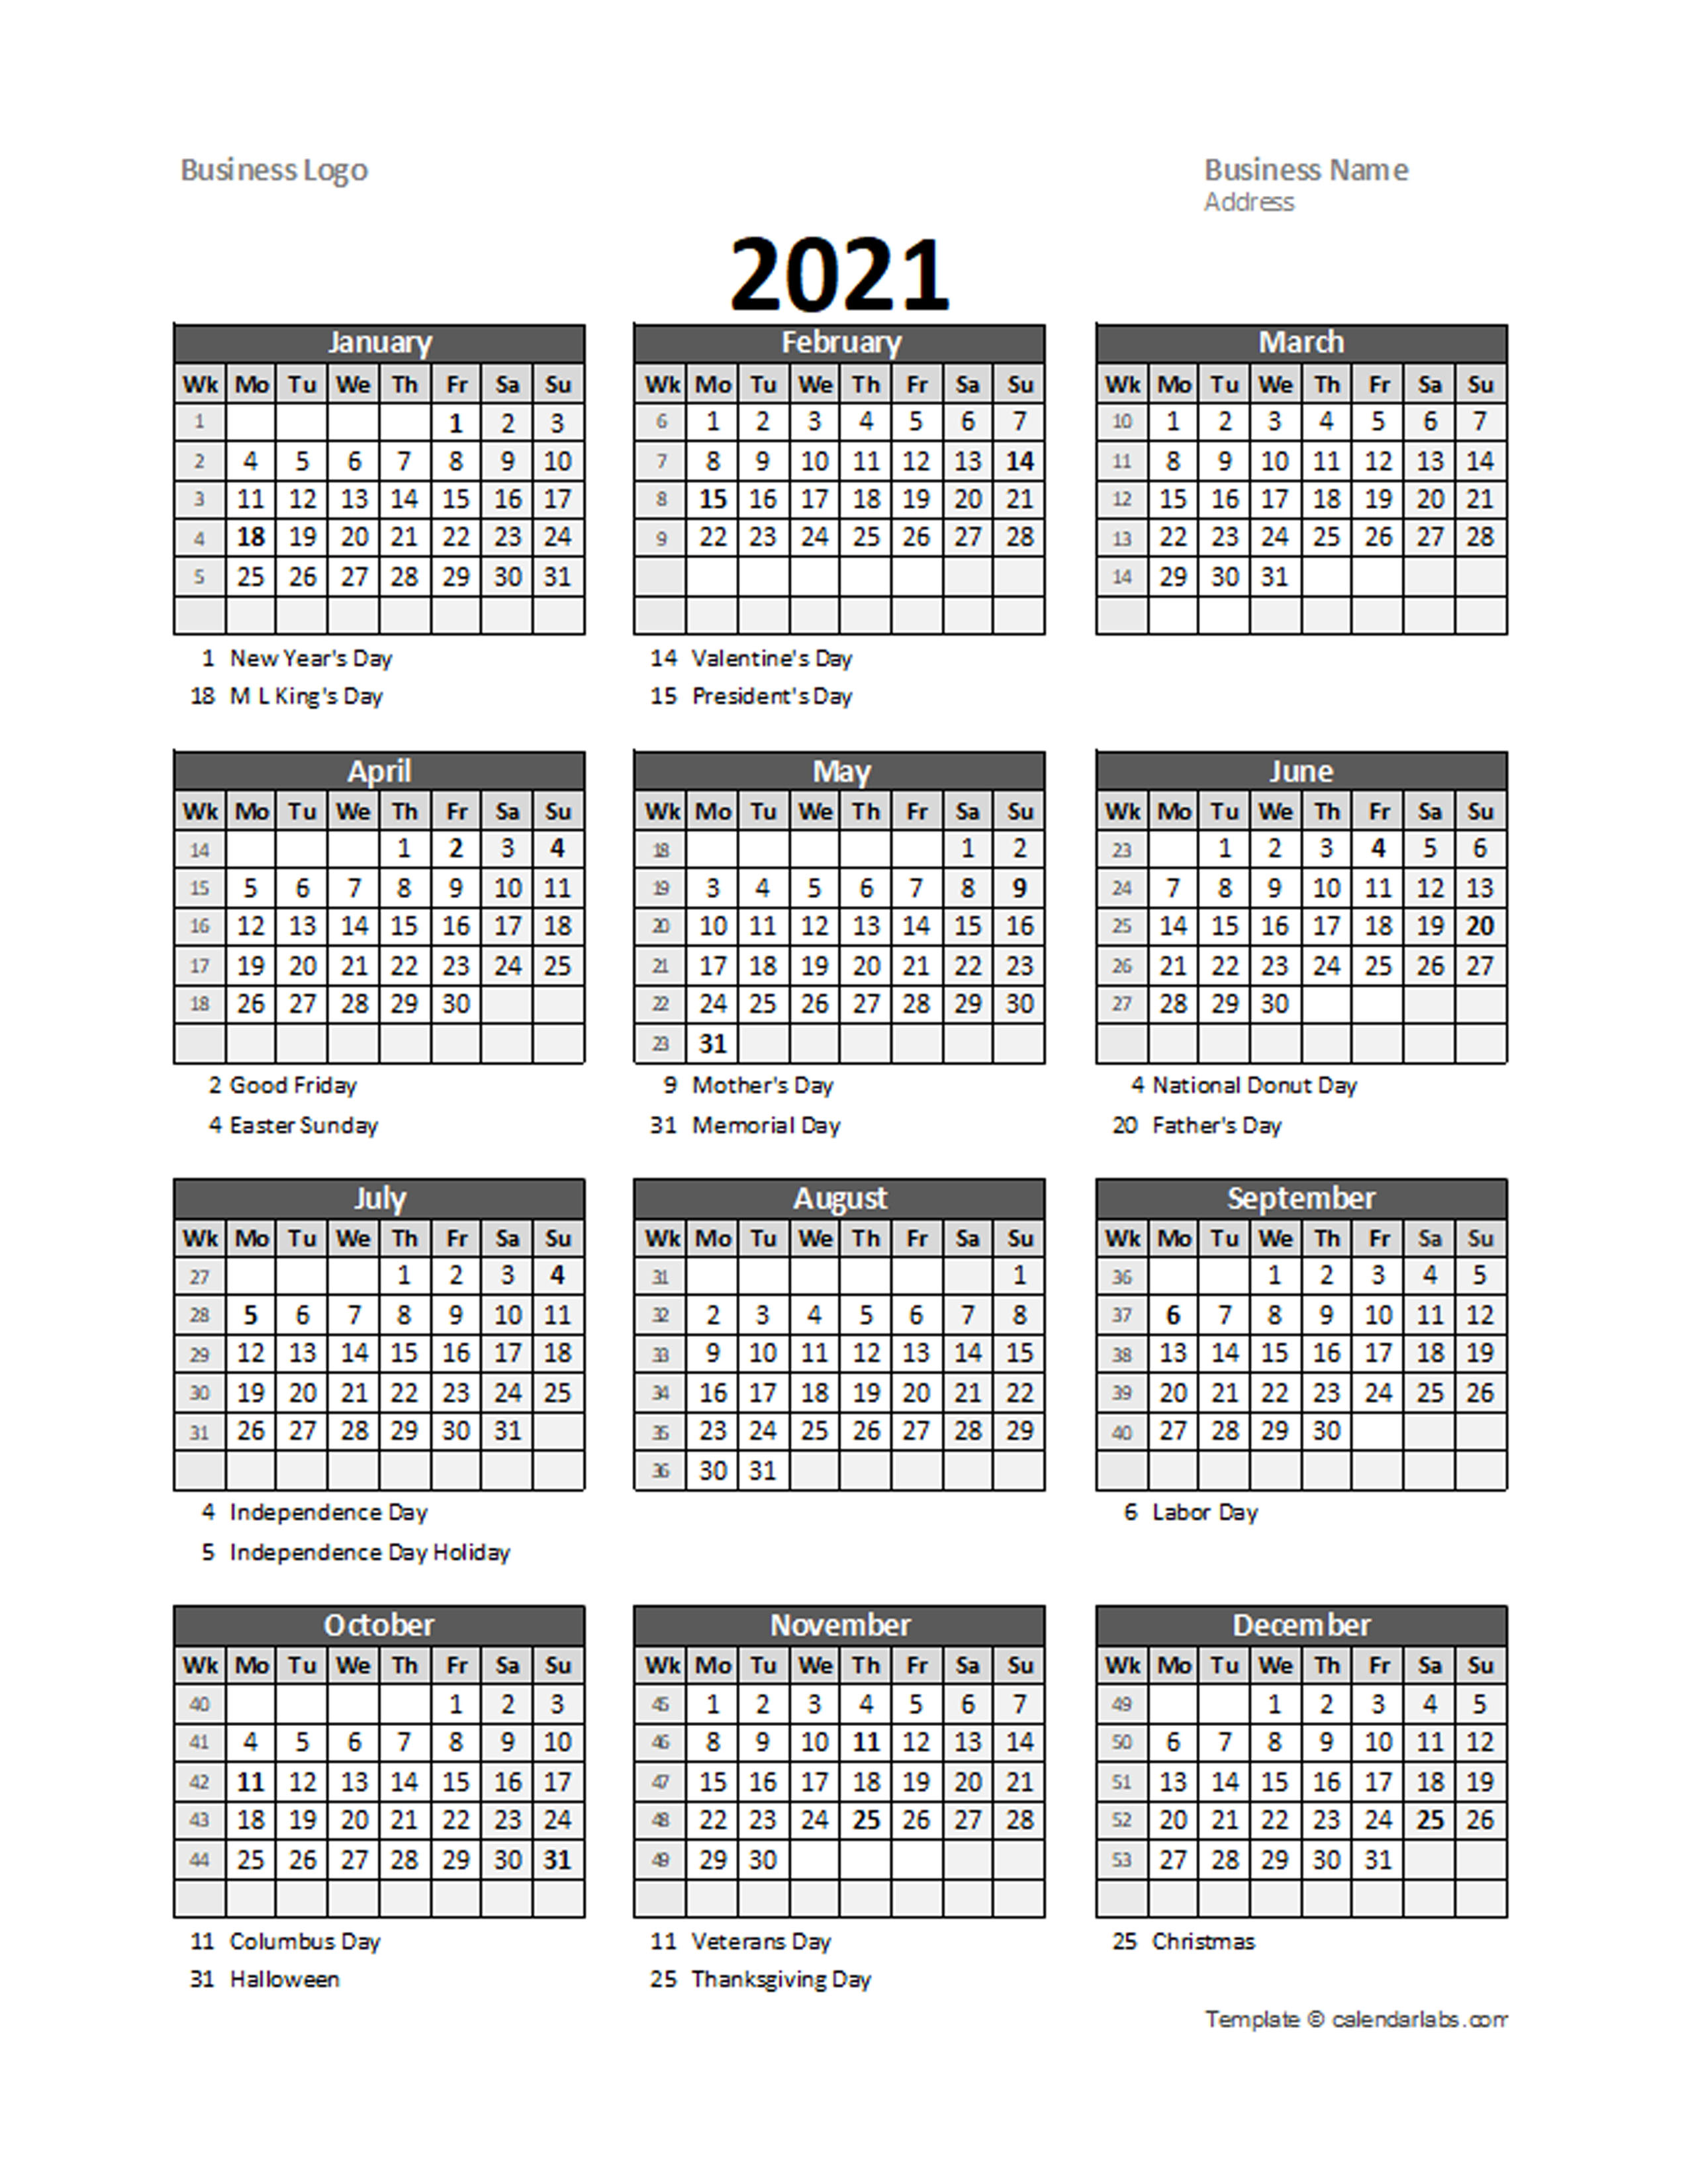 2021 Yearly Business Calendar with Week Number - Free ...